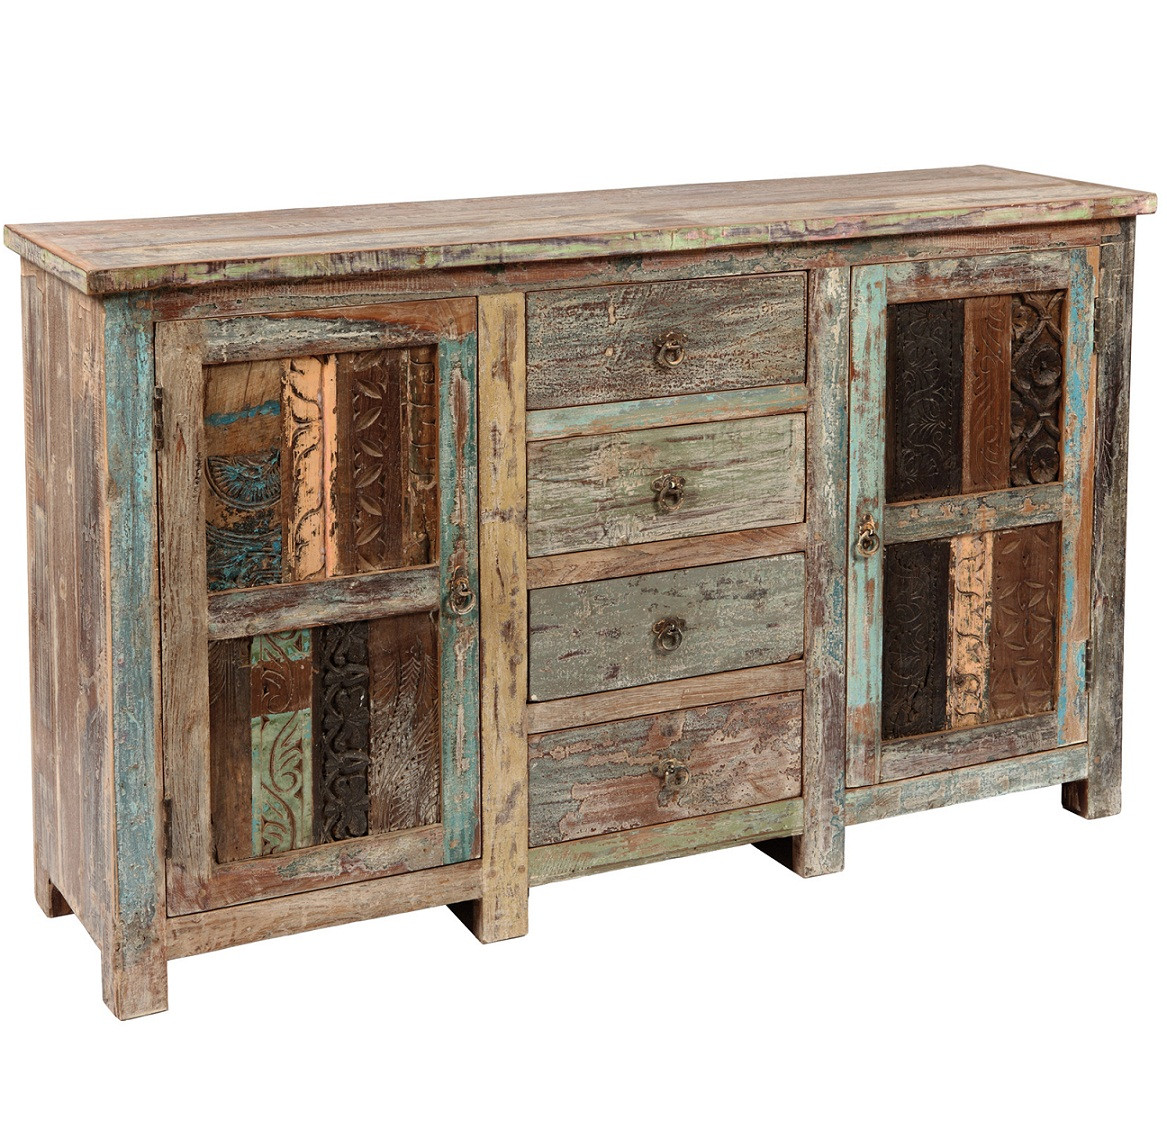 Shabby chic vintage 4 door sideboard zin home for Classic home tables